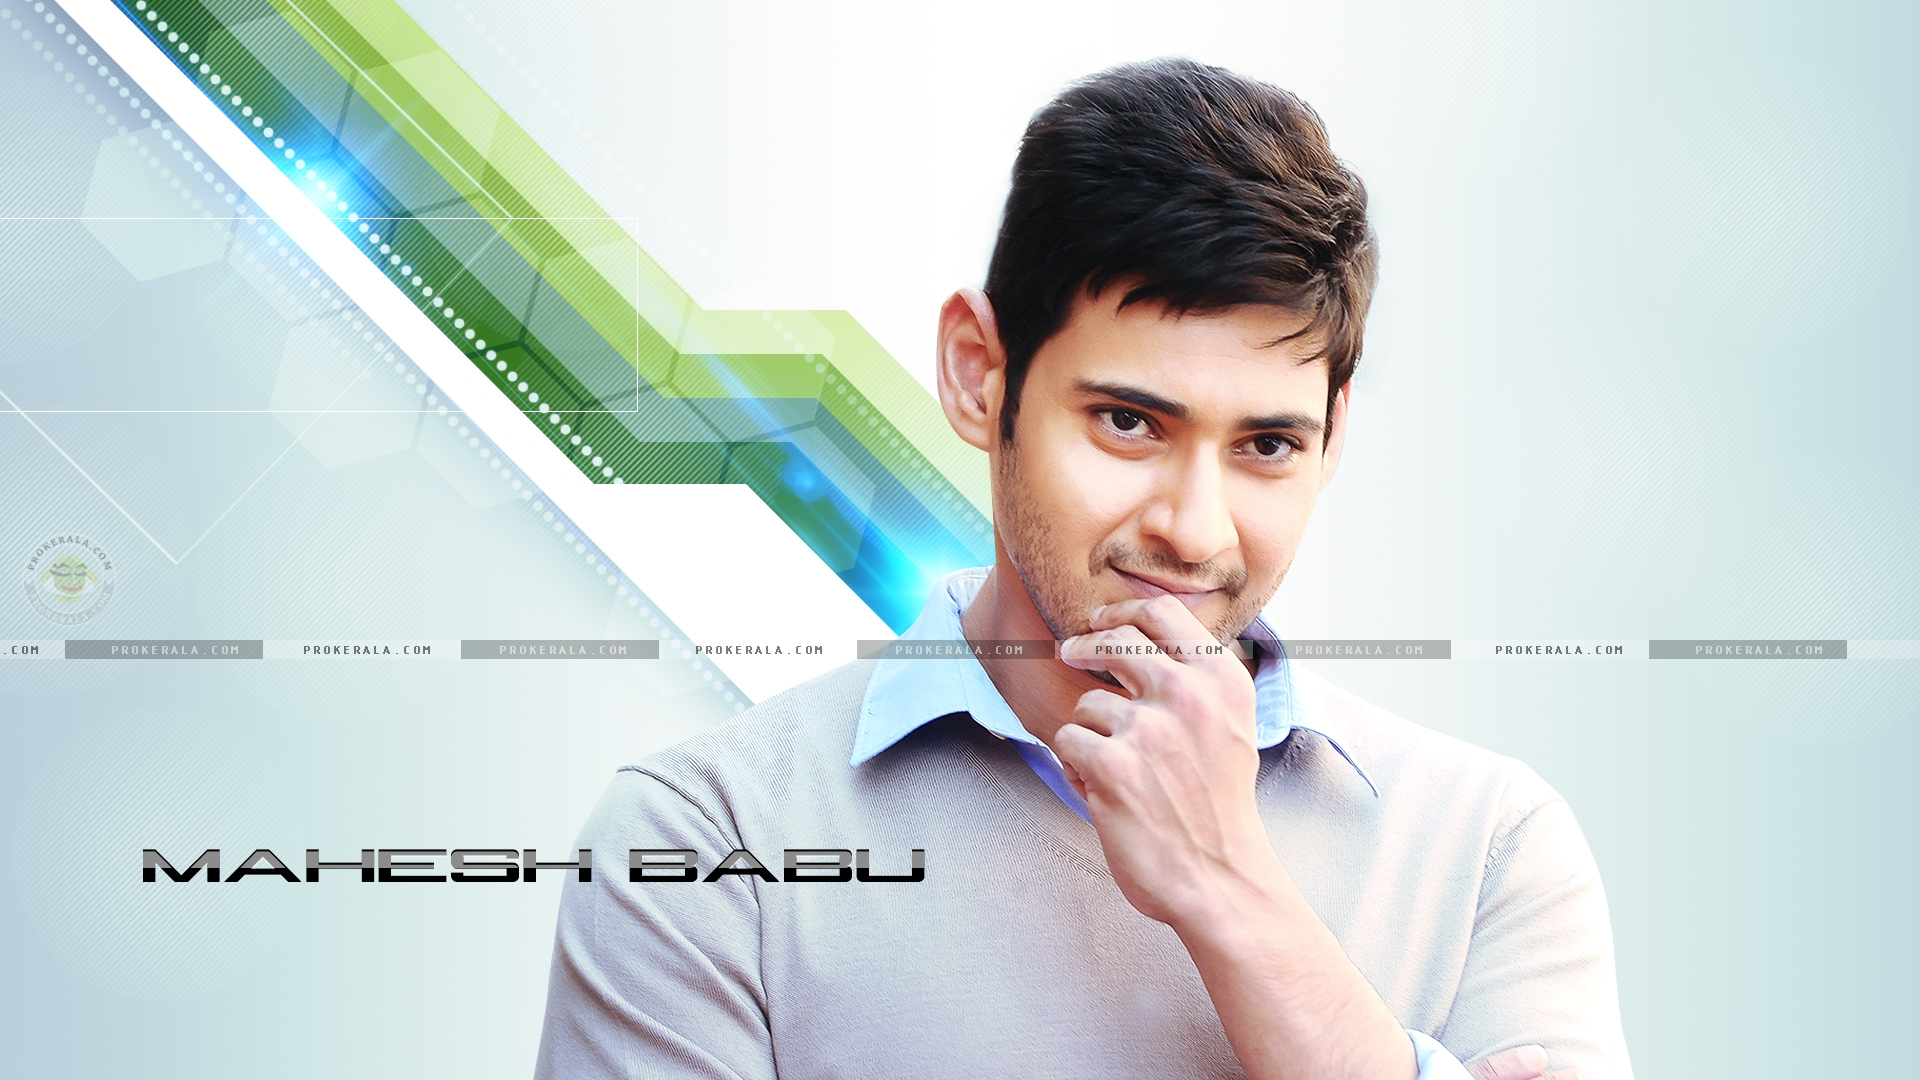 Mahesh babu hd wallpapers